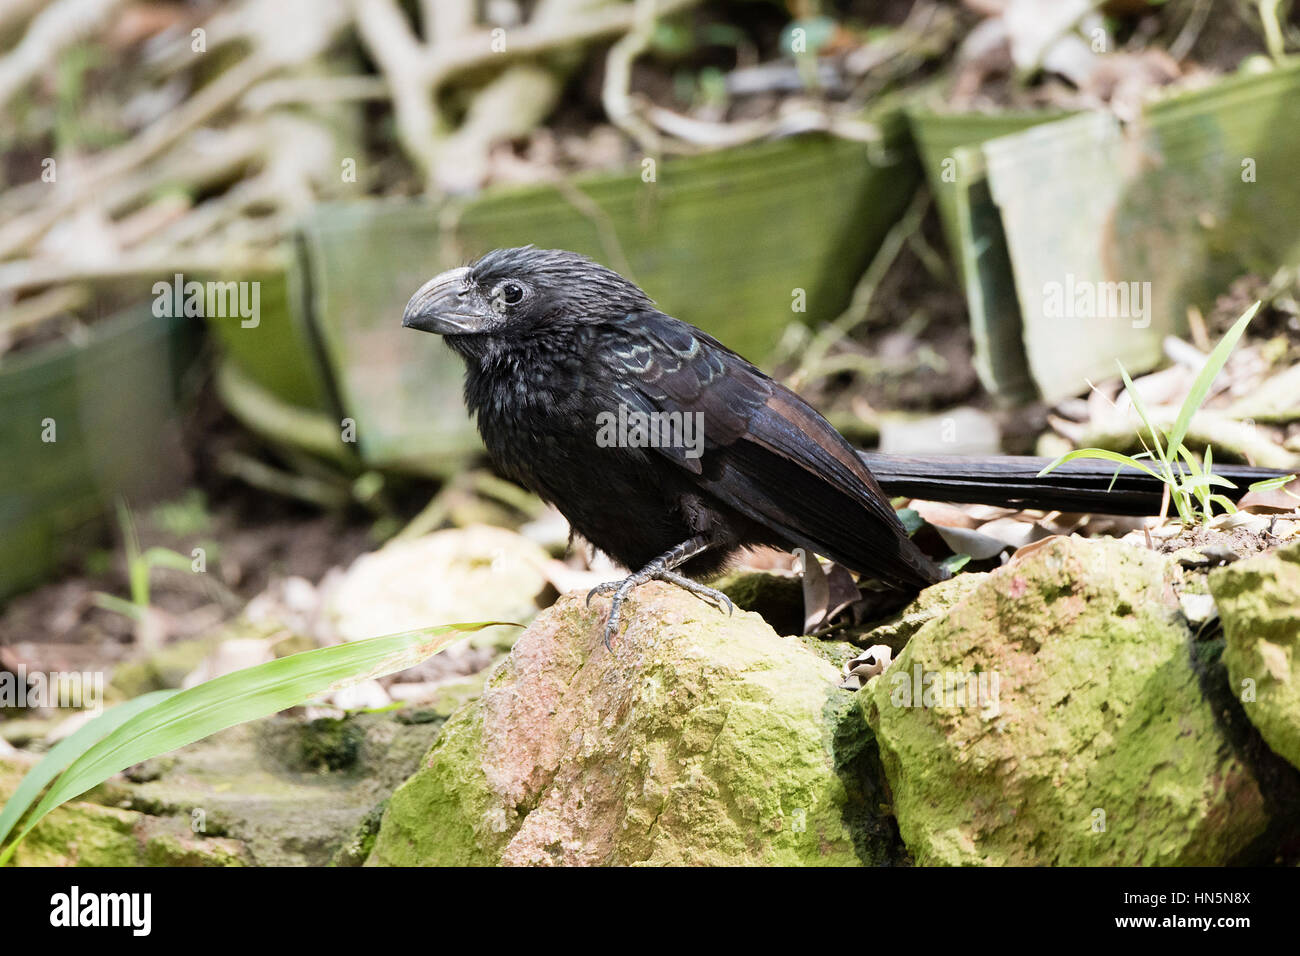 Groove-billed Ani (Crotophaga sulcirostris) in Vegetation in Mexico - Stock Image